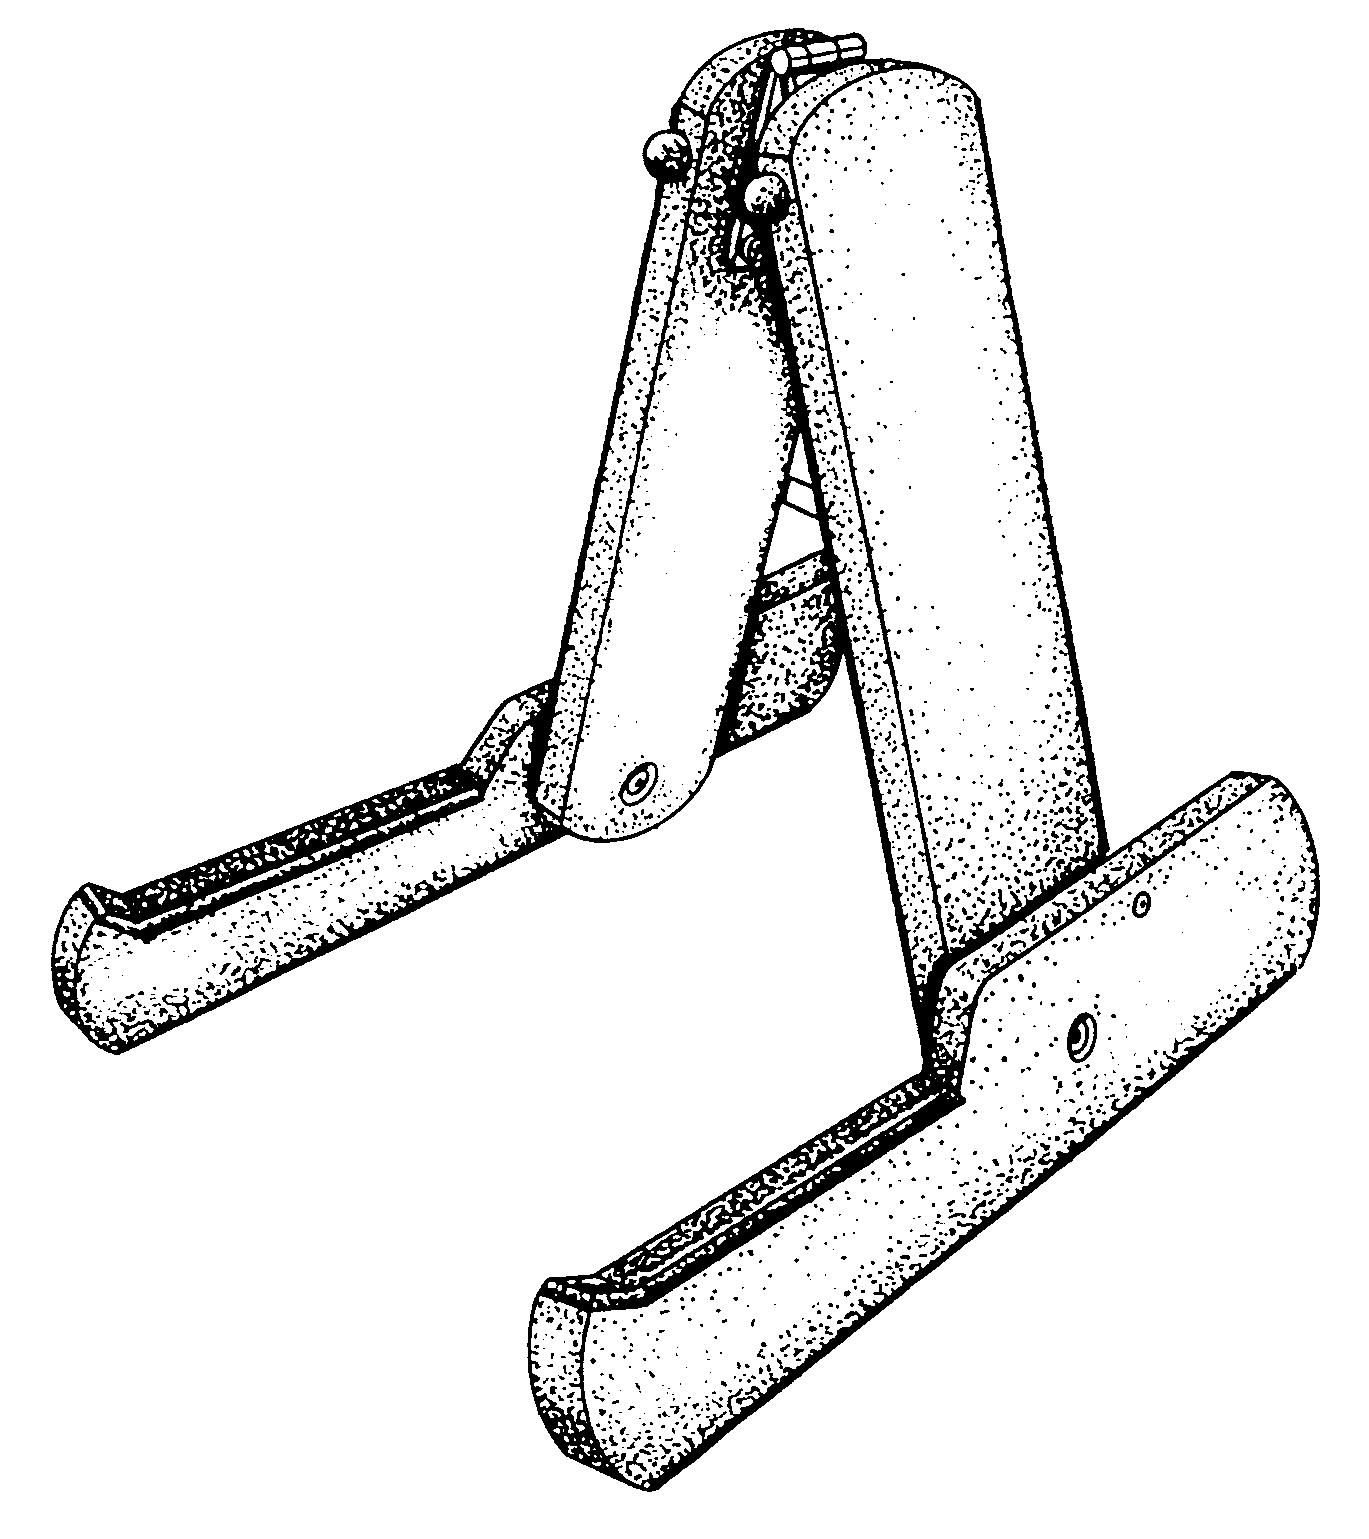 patent usd foldable guitar stand google patents